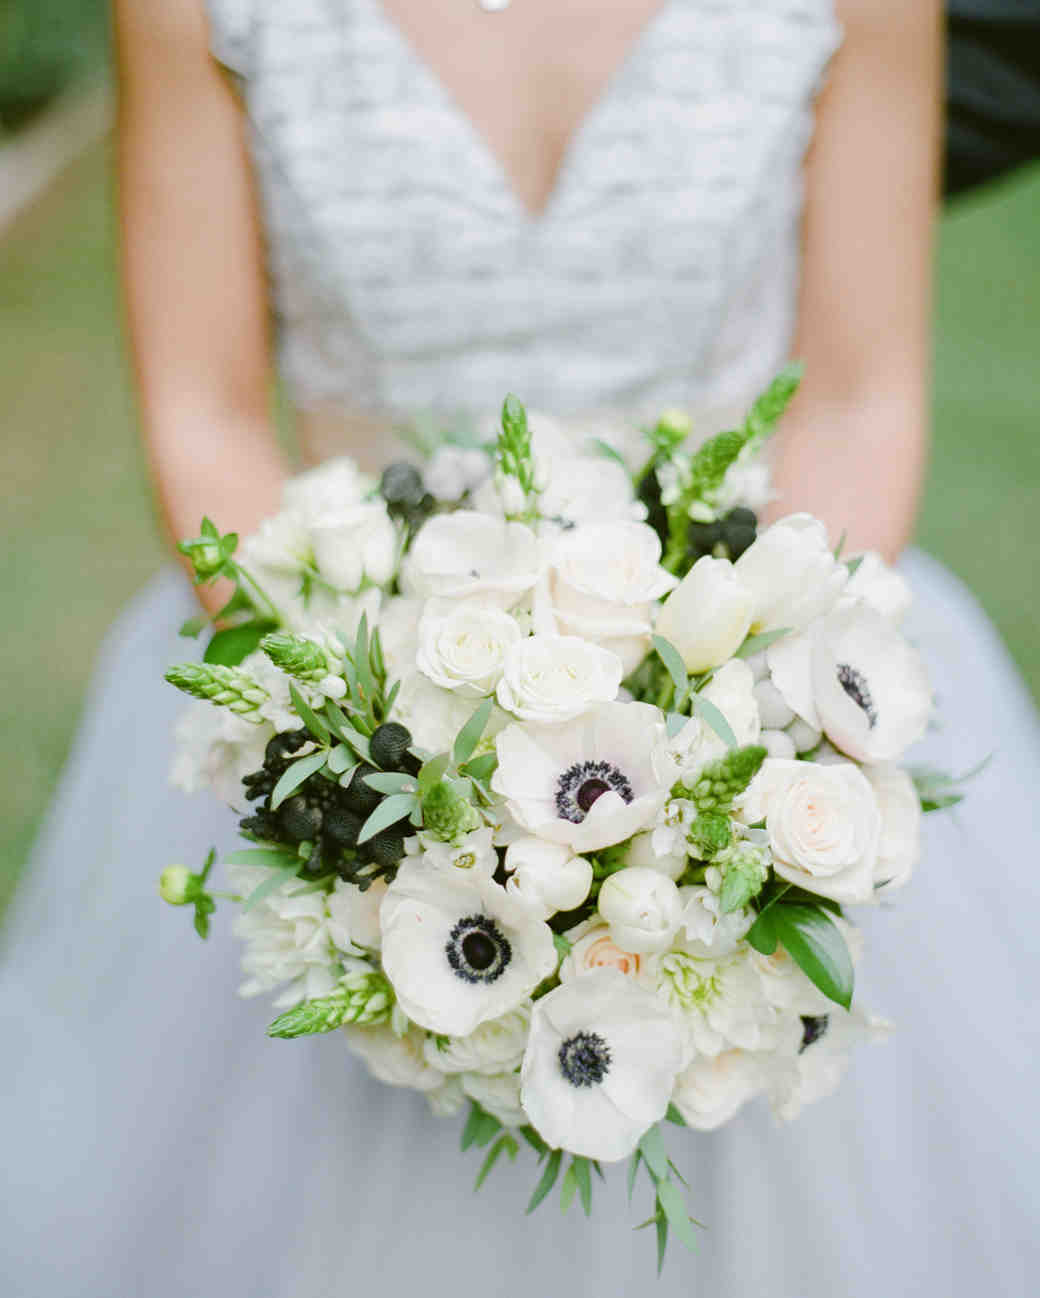 25 anemone wedding bouquets for every type of bride martha stewart 25 anemone wedding bouquets for every type of bride martha stewart weddings izmirmasajfo